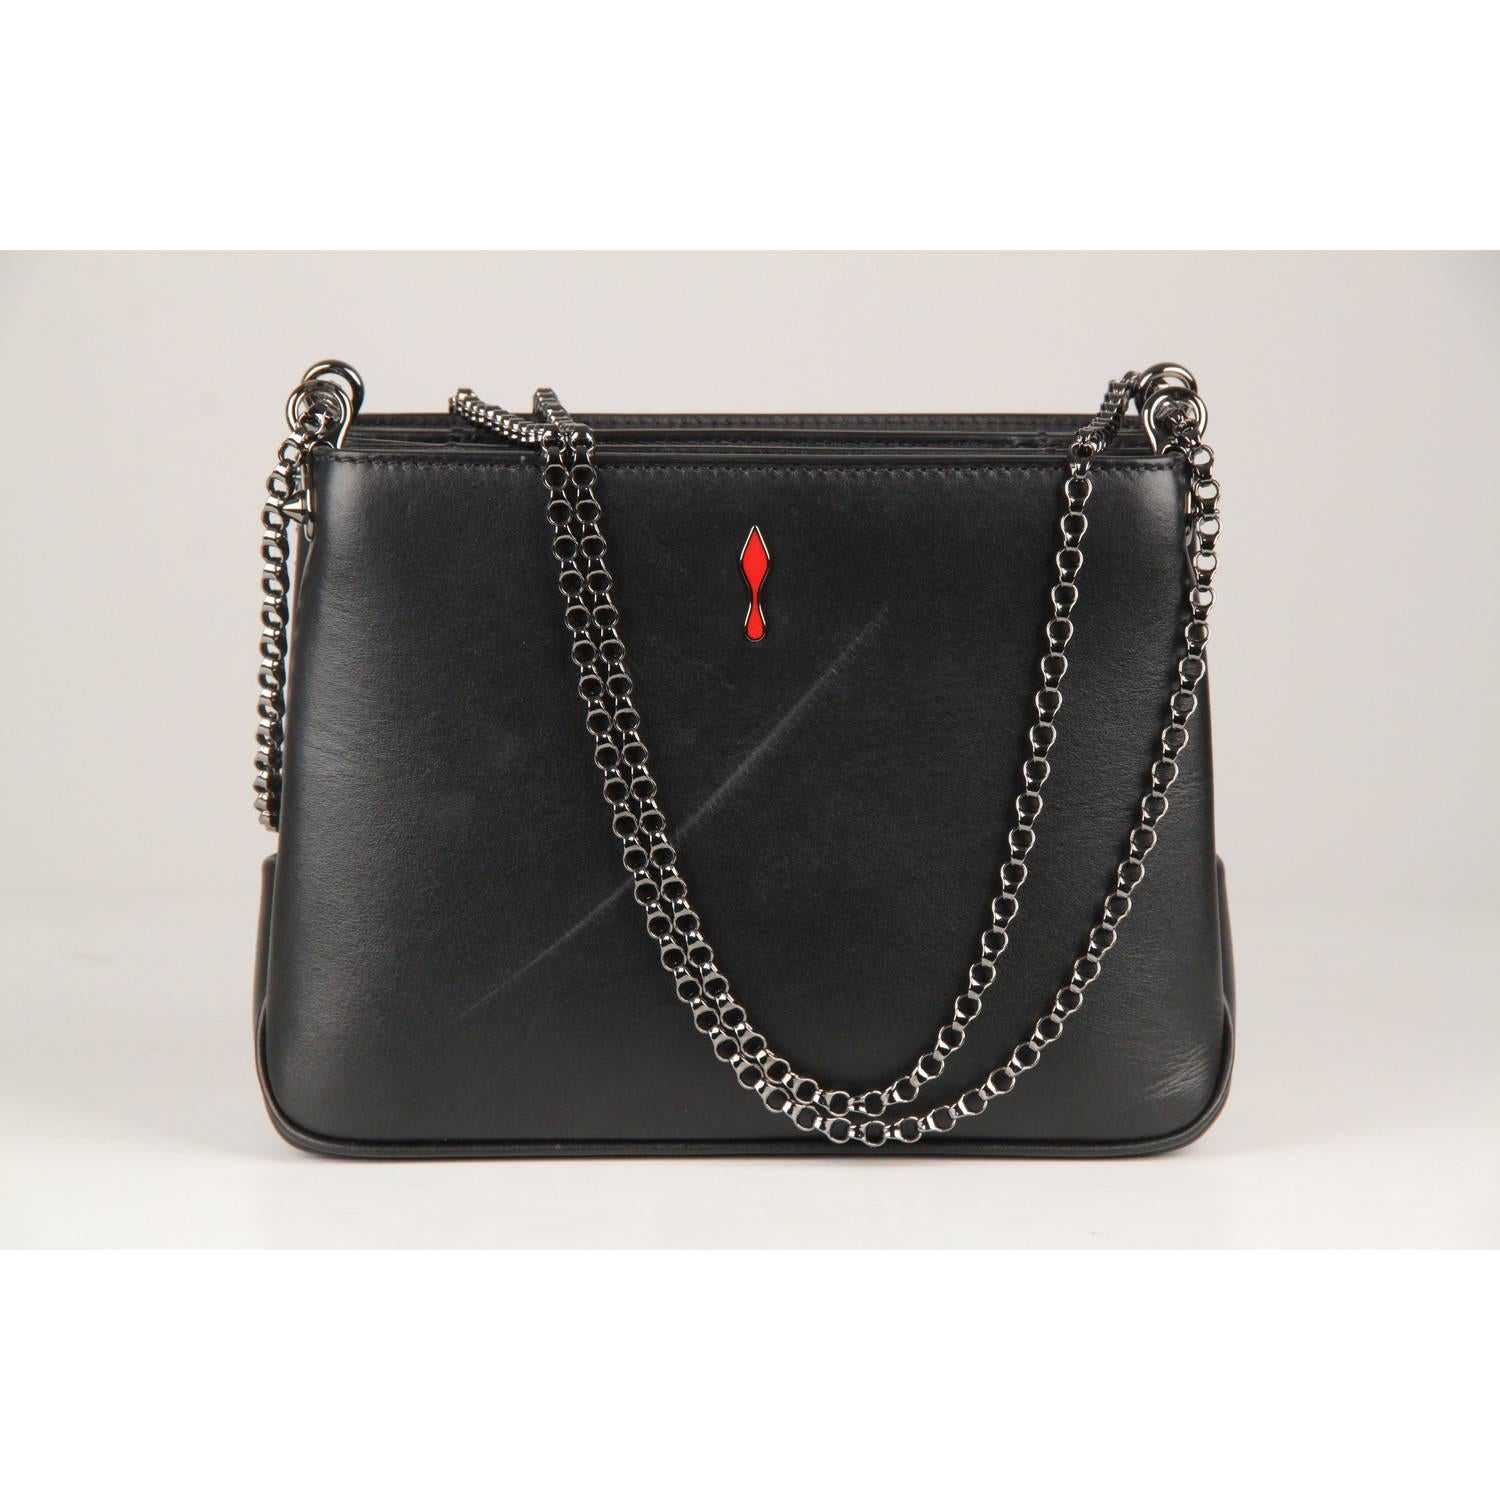 f9b19617cecc CHRISTIAN LOUBOUTIN Black Leather Triloubi Small Studded Shoulder Bag For  Sale at 1stdibs